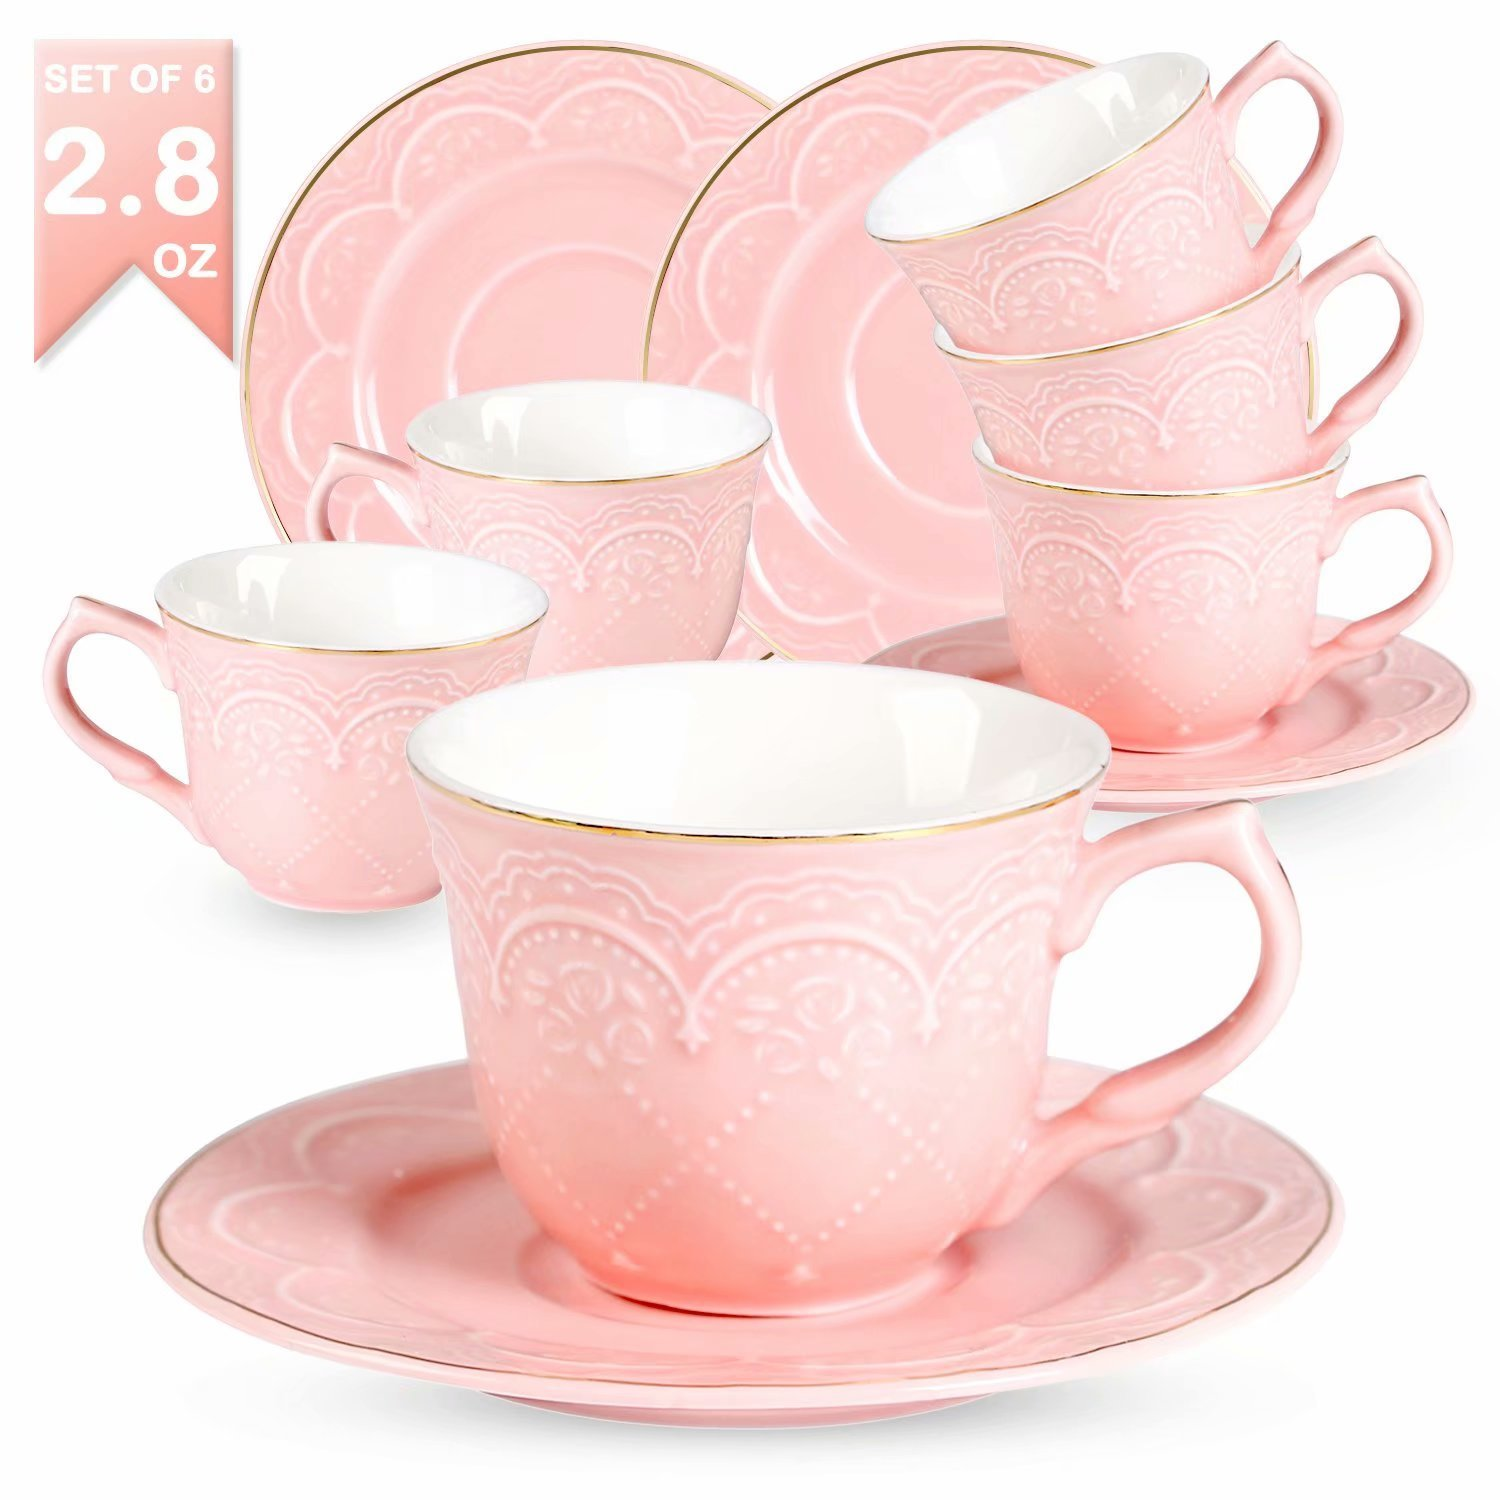 Guangyang Tea Cups 2.8-OZ with Saucers in Lovely Pink Porcelain as Great Gifts Perfect Choice for Tea Party Cup Set for Mocha Tea Coffee Cappuccino Espresso Set of 6 Coffee Cup Set